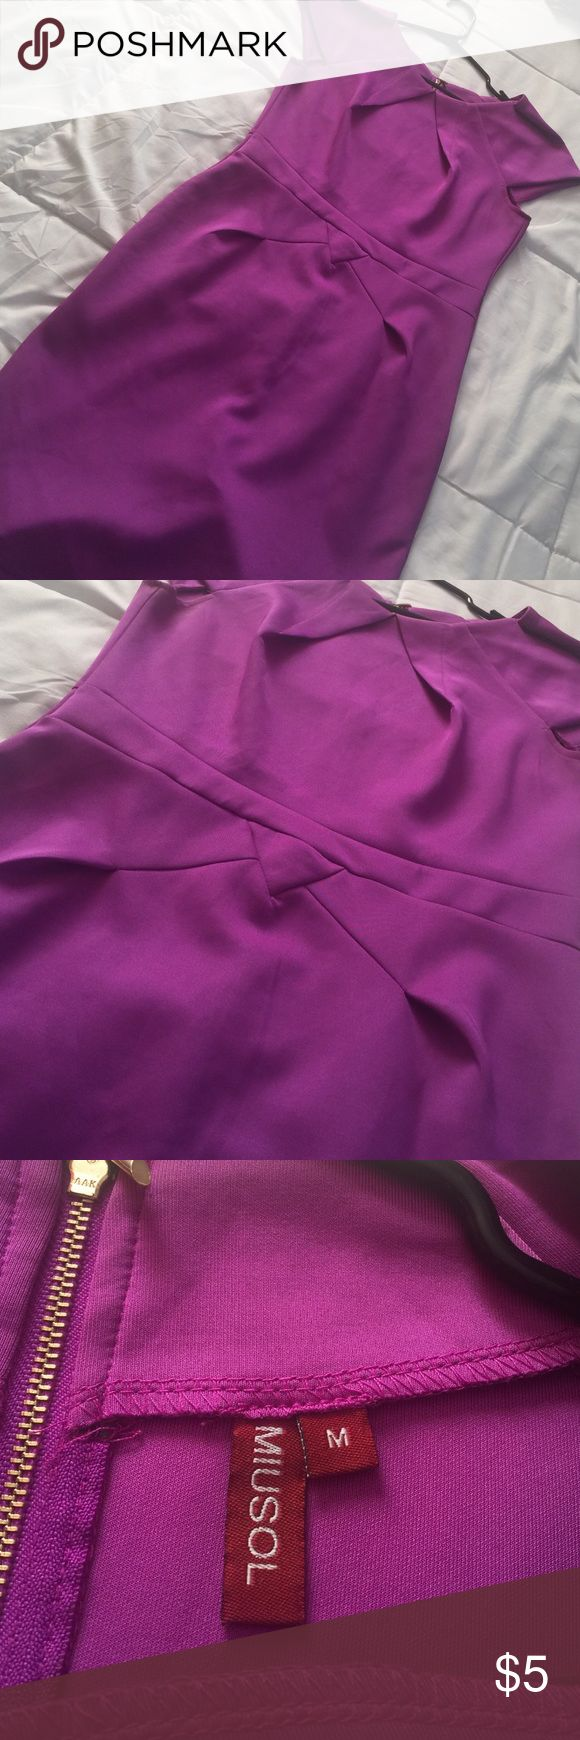 Purple Formal Dress Great condition, worn only once. Perfect dress for a formal engagement or a company party. online boutique Dresses Midi